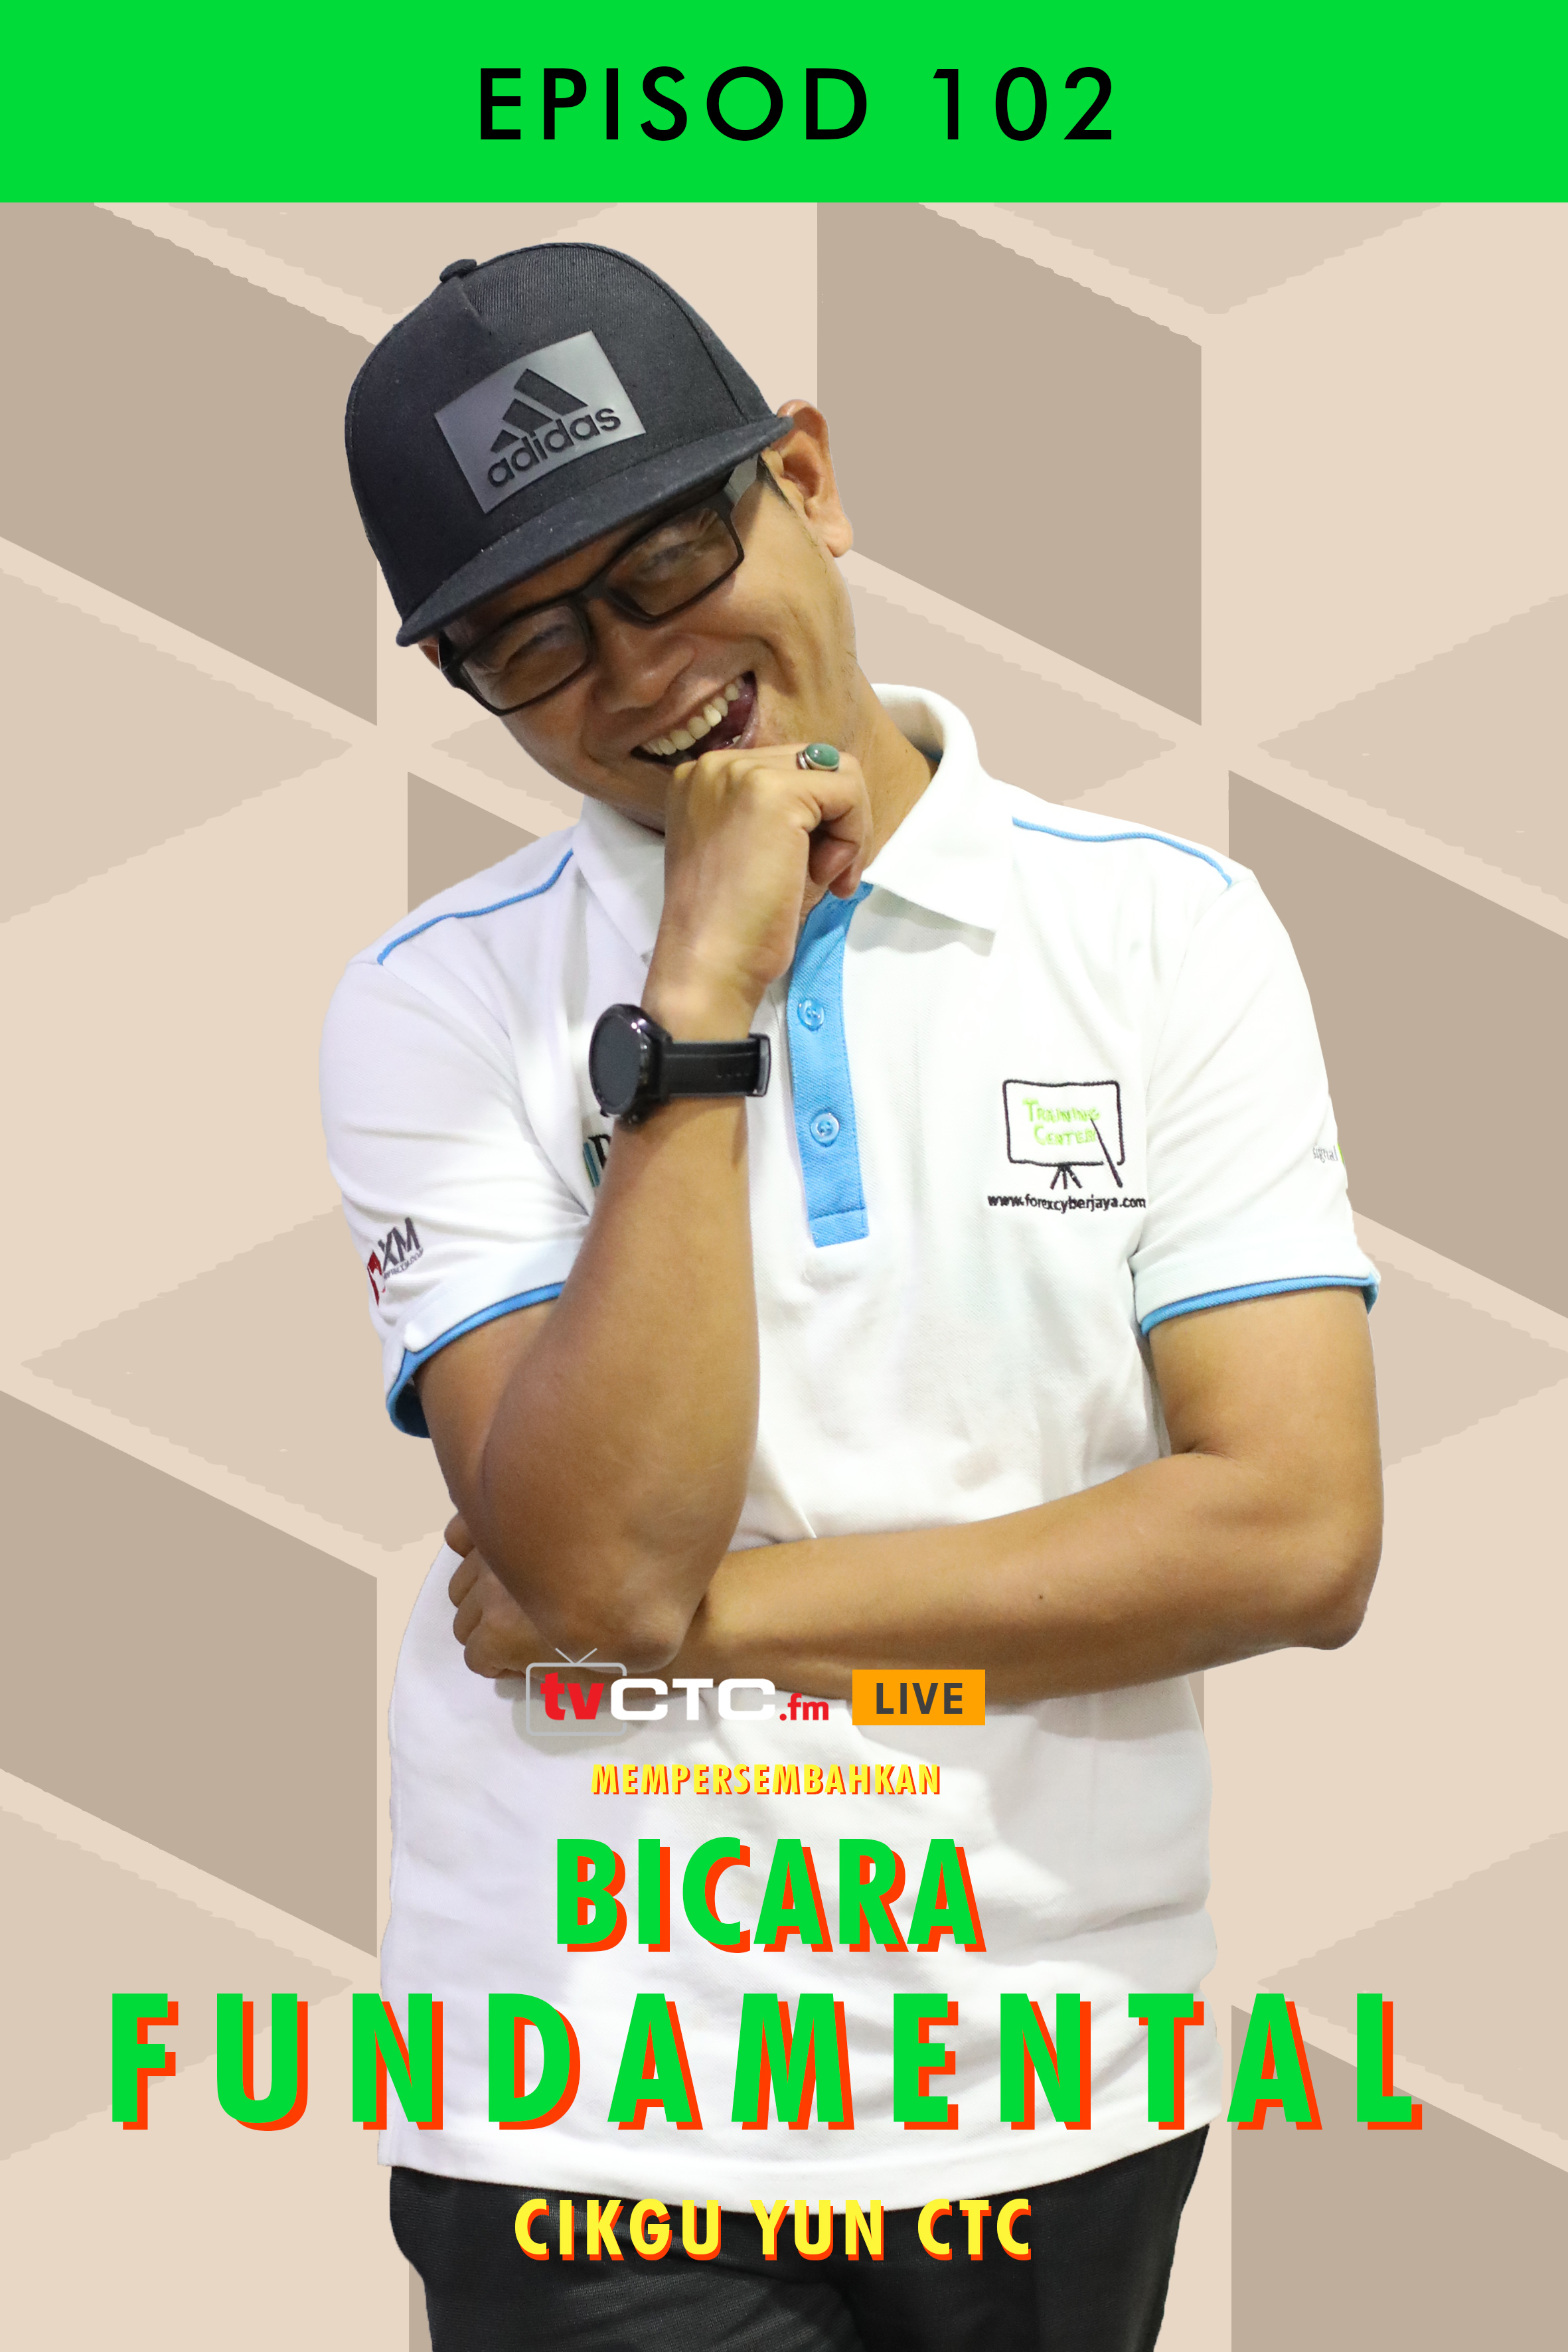 BICARA FUNDAMENTAL : Fundamental (Episod 102)